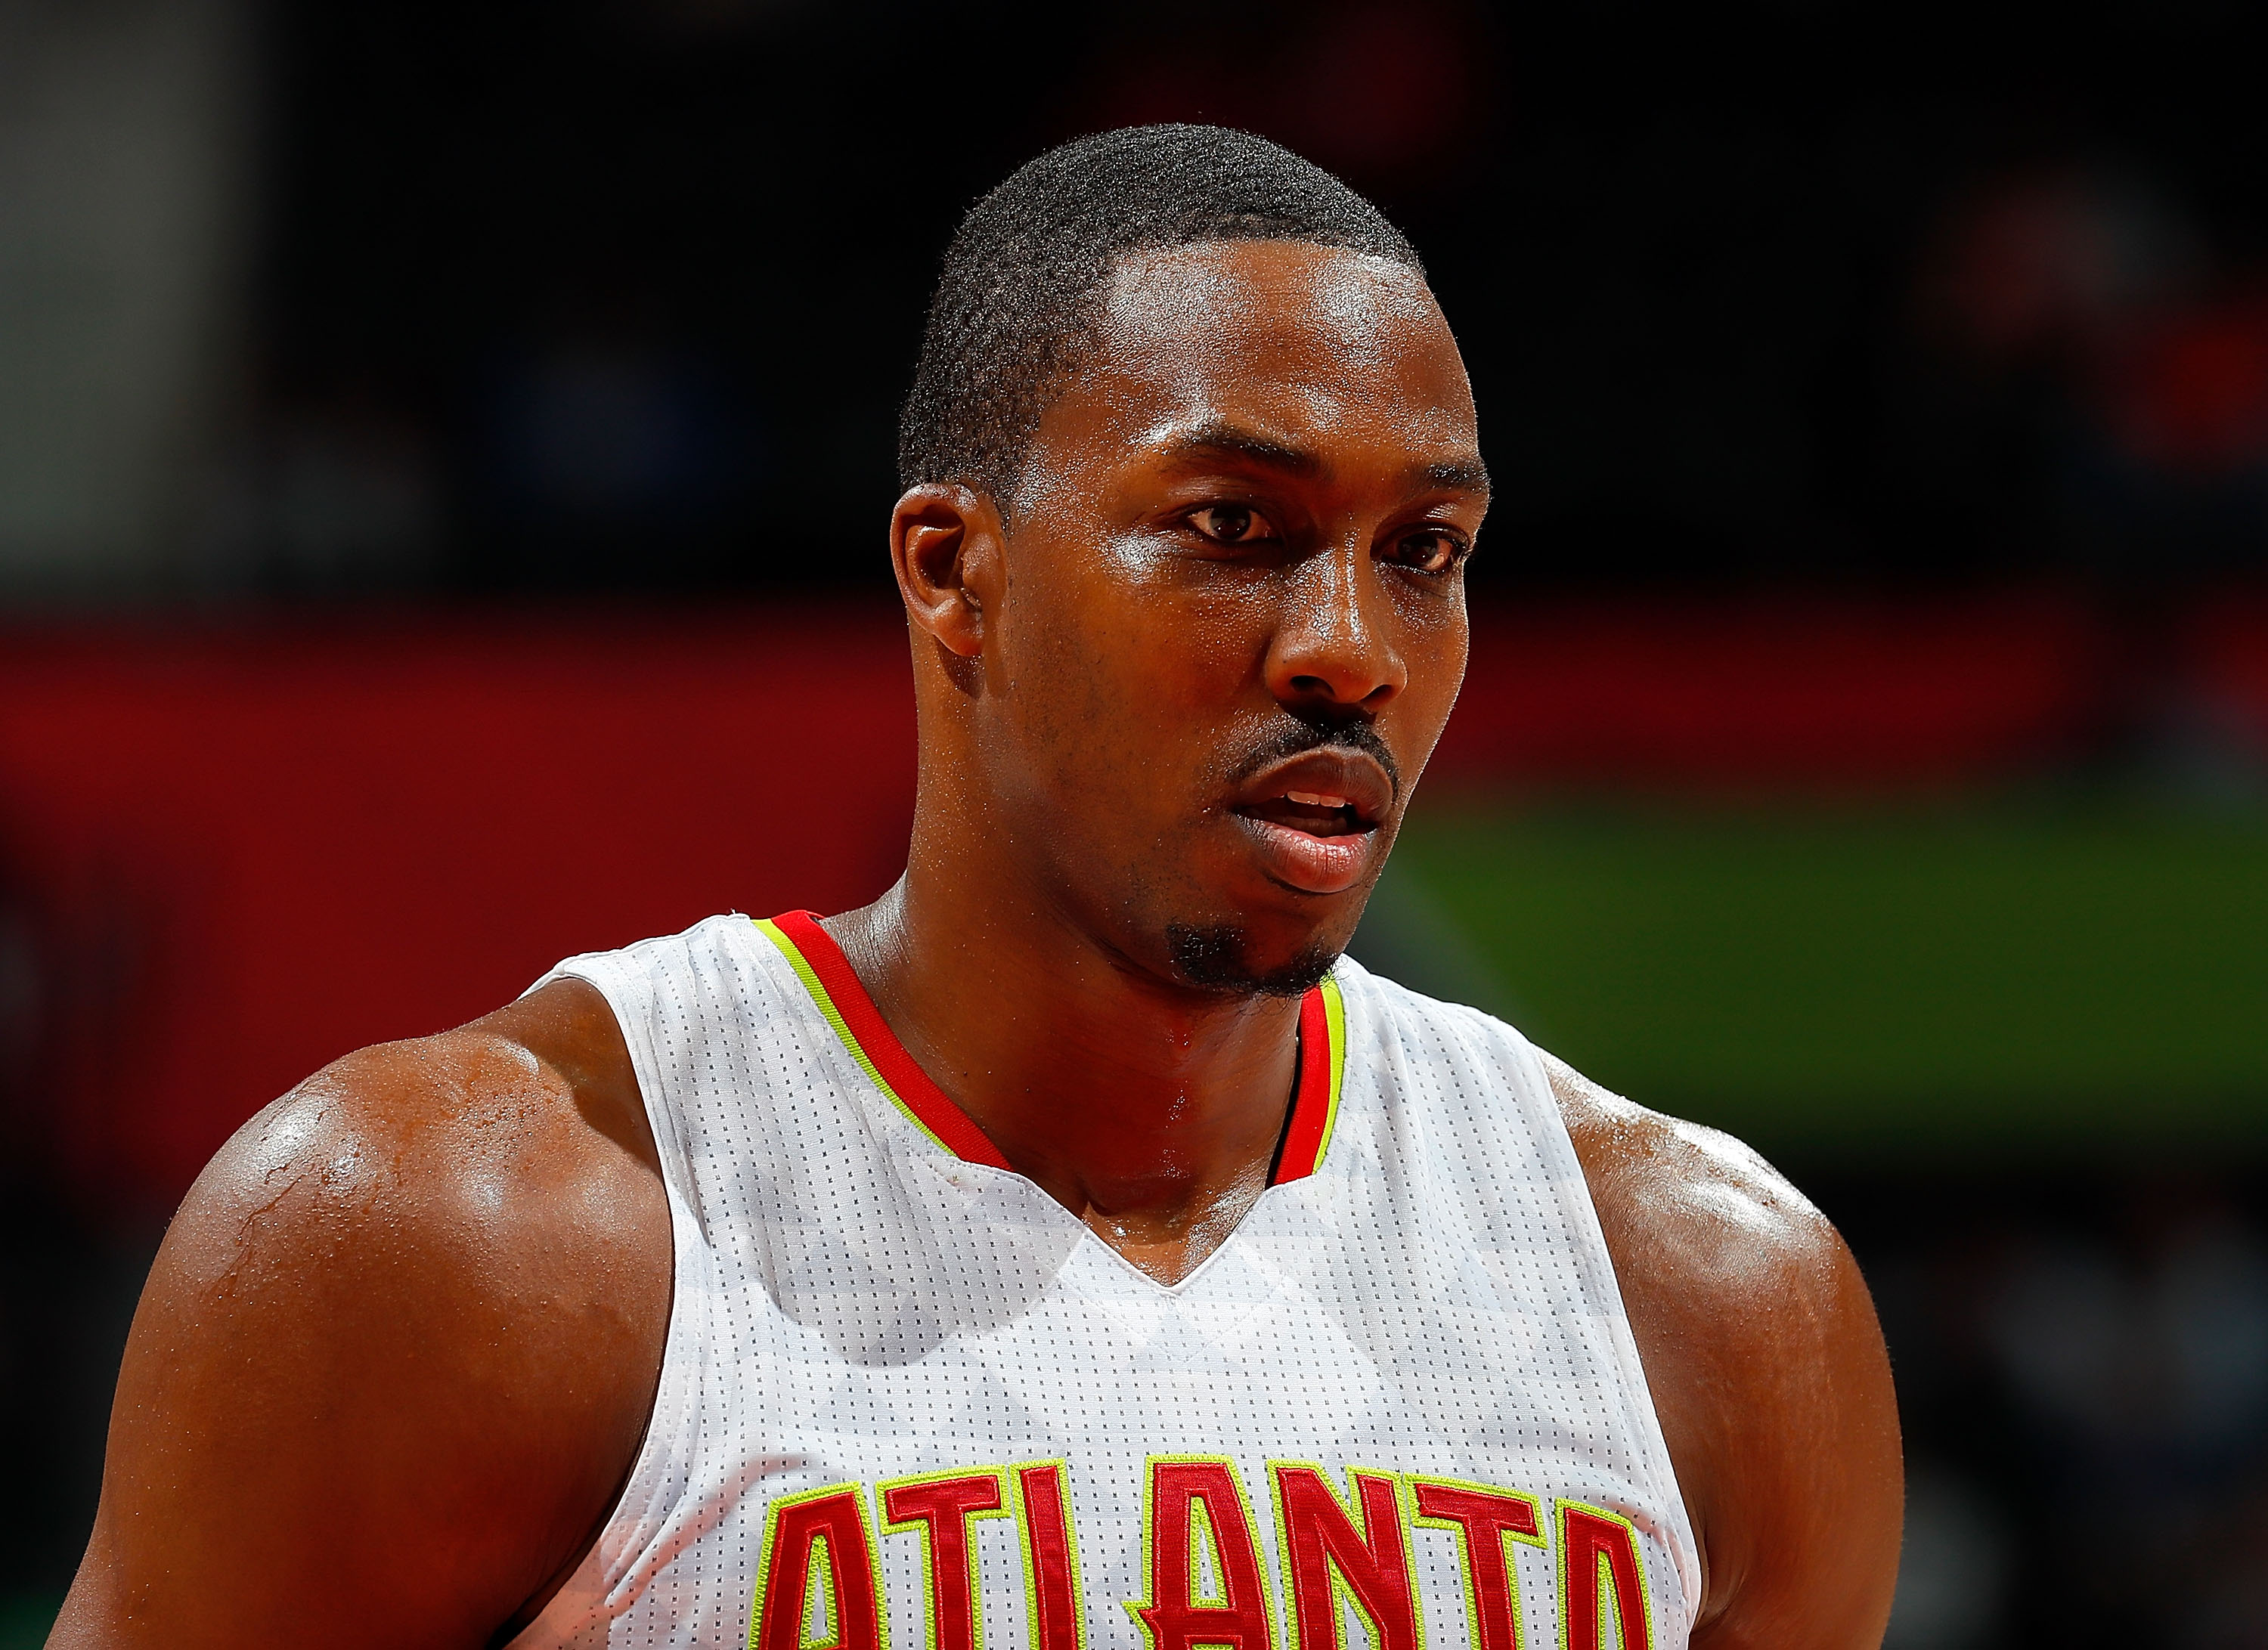 ATLANTA, GA - OCTOBER 13:  Dwight Howard #8 of the Atlanta Hawks looks on during the game against the Atlanta Hawks at Philips Arena on October 13, 2016 in Atlanta, Georgia.  NOTE TO USER User expressly acknowledges and agrees that, by downloading and or using this photograph, user is consenting to the terms and conditions of the Getty Images License Agreement.  (Photo by Kevin C. Cox/Getty Images)